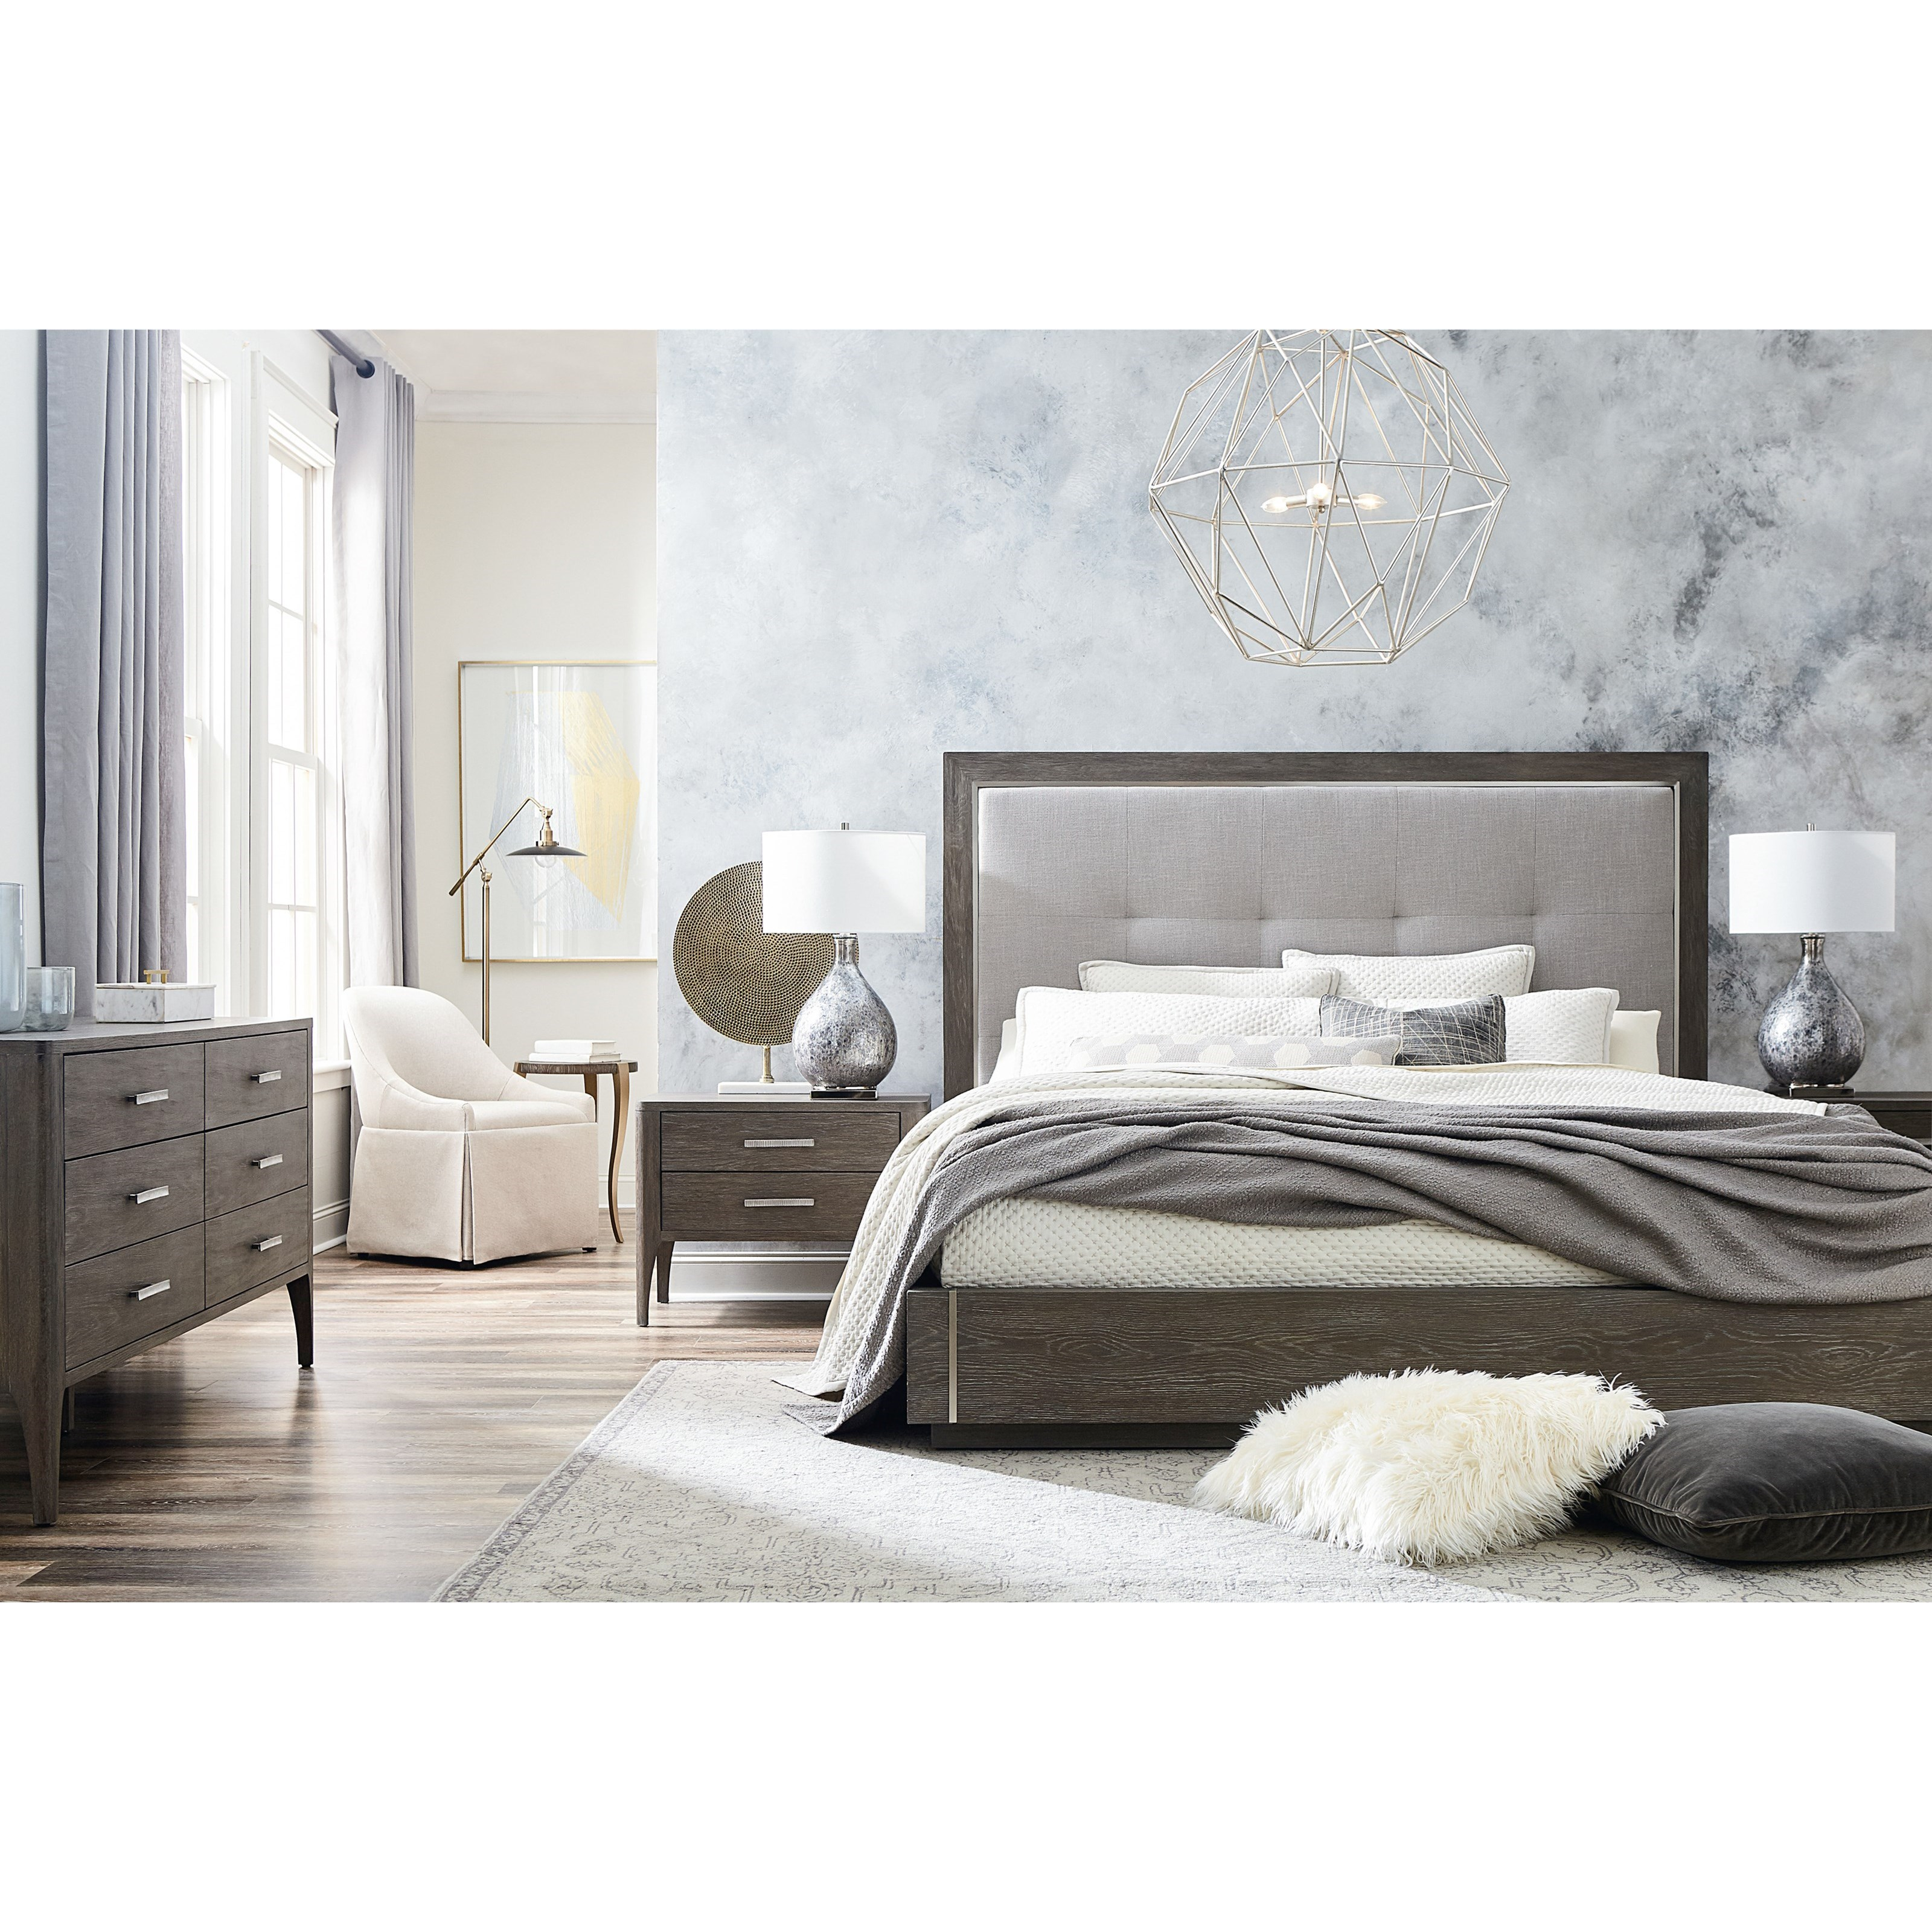 Modern - Astor and Rivoli Queen Bedroom Group by Bassett at Esprit Decor Home Furnishings